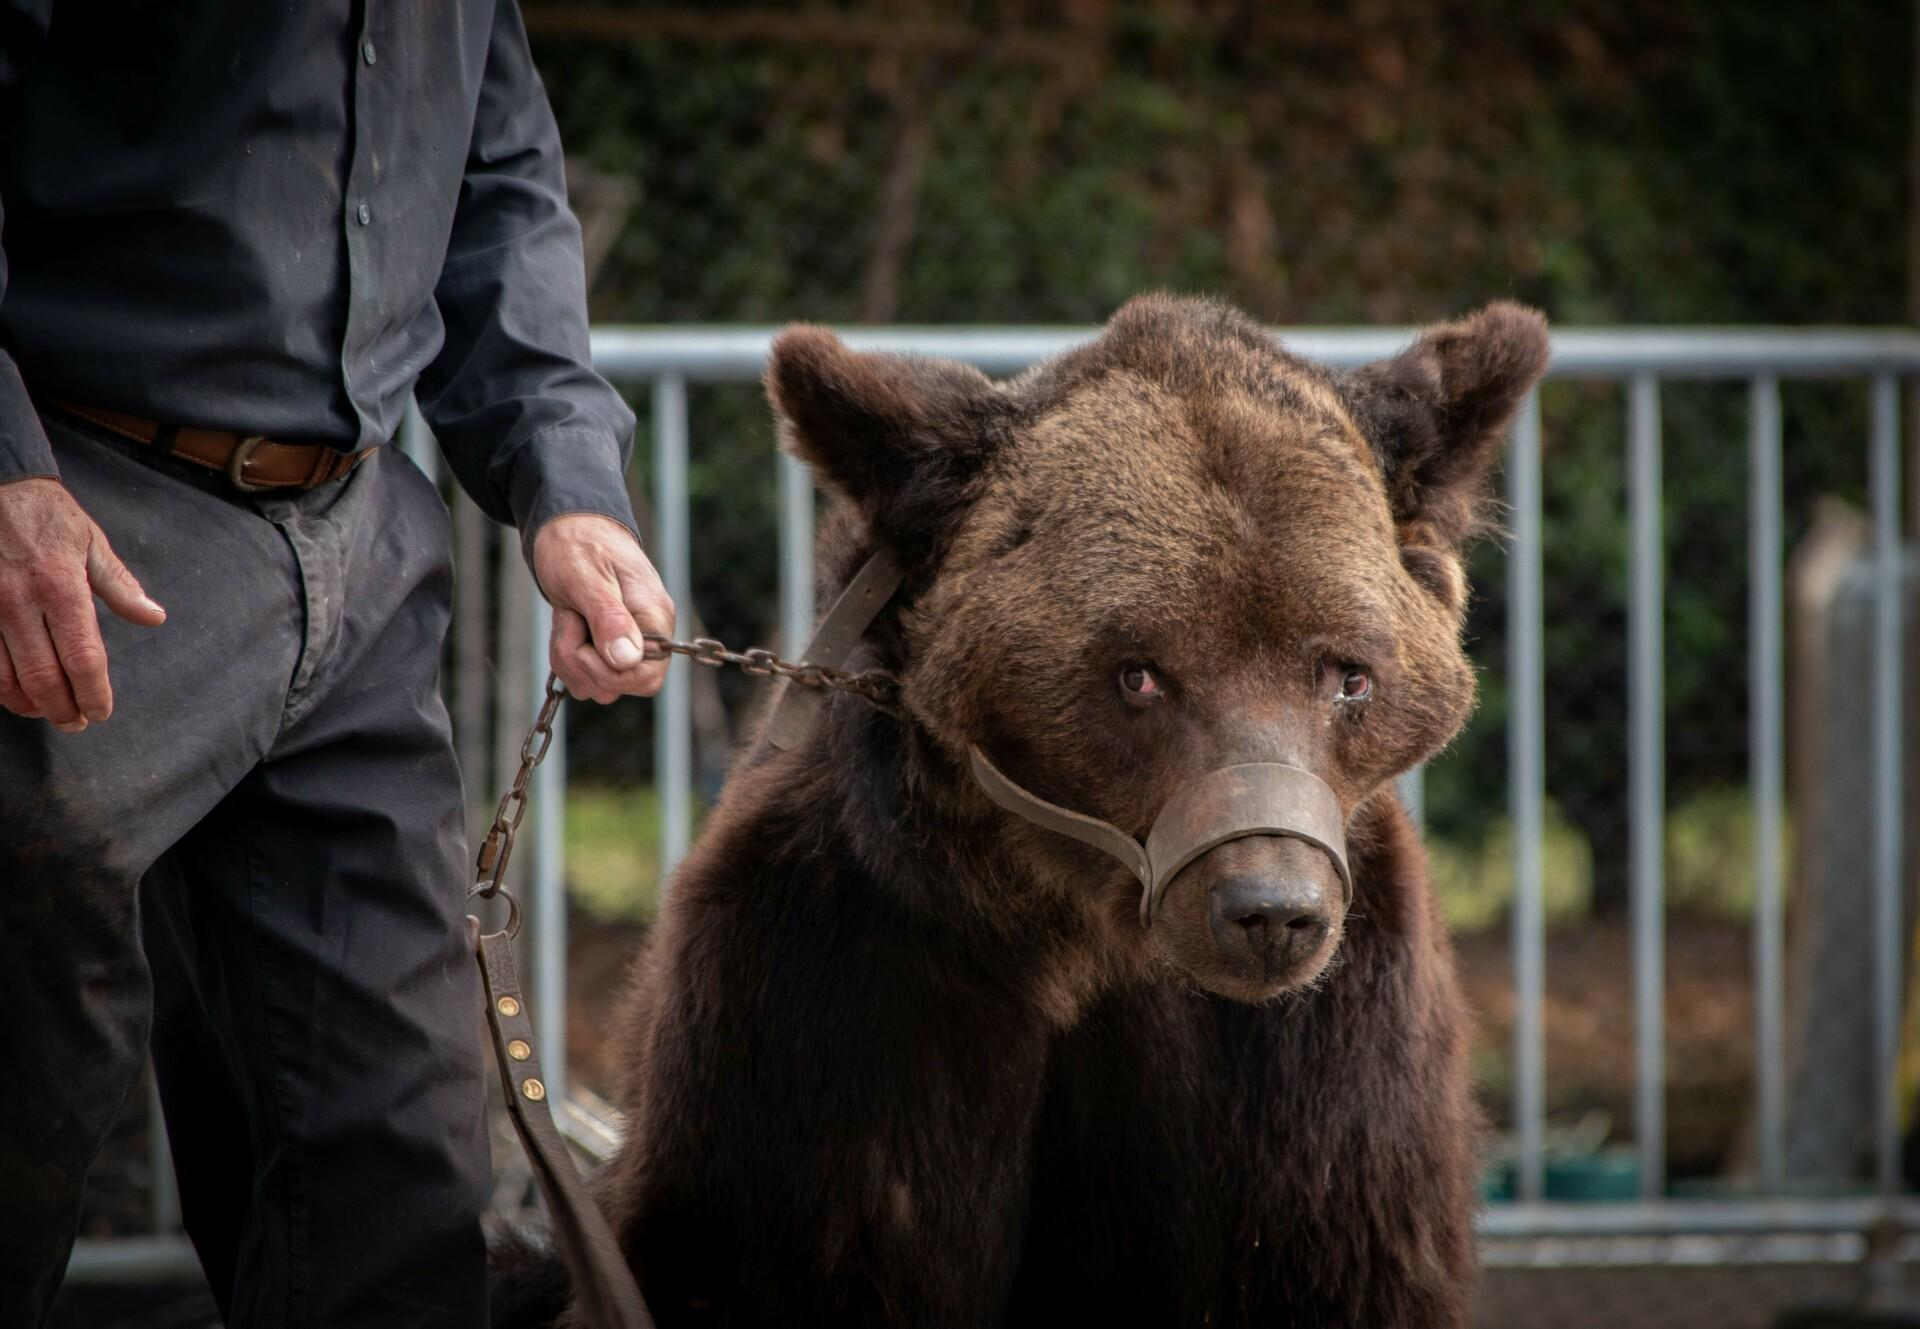 Bear on a chain in France